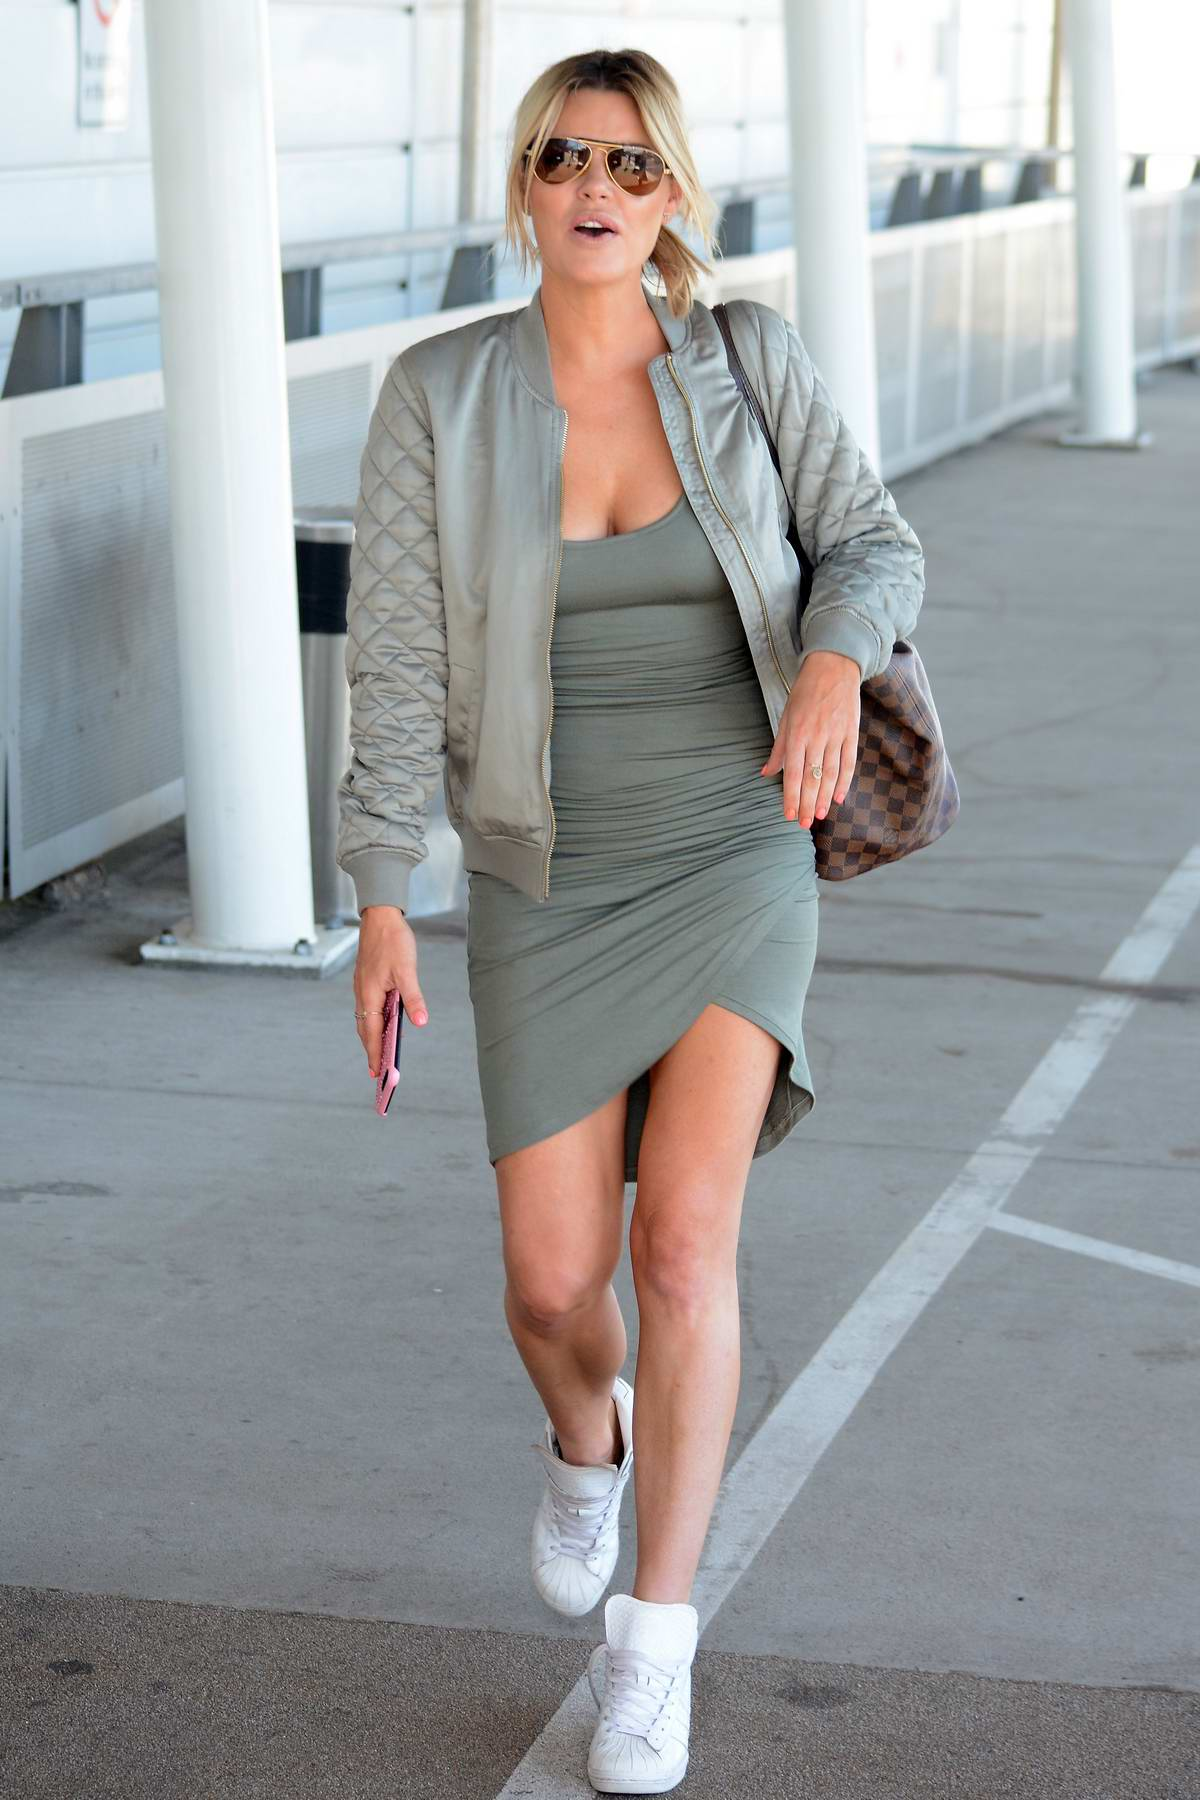 Sophie Monk has a quick smoke at the airport before she board her flight in Sydney